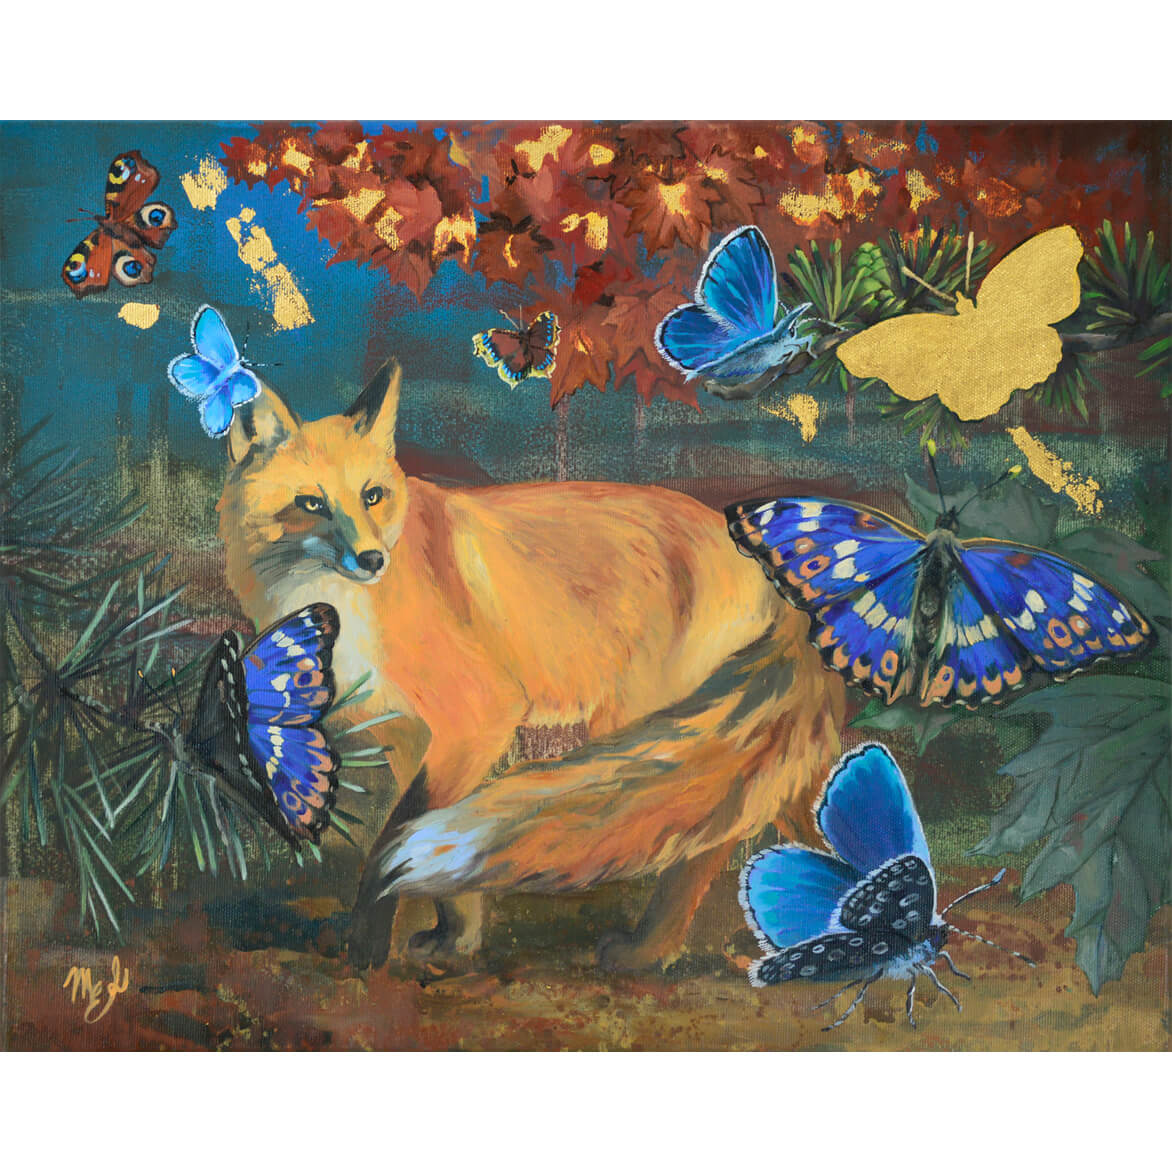 Oil painting with fox, butterflies and gold leaf details.